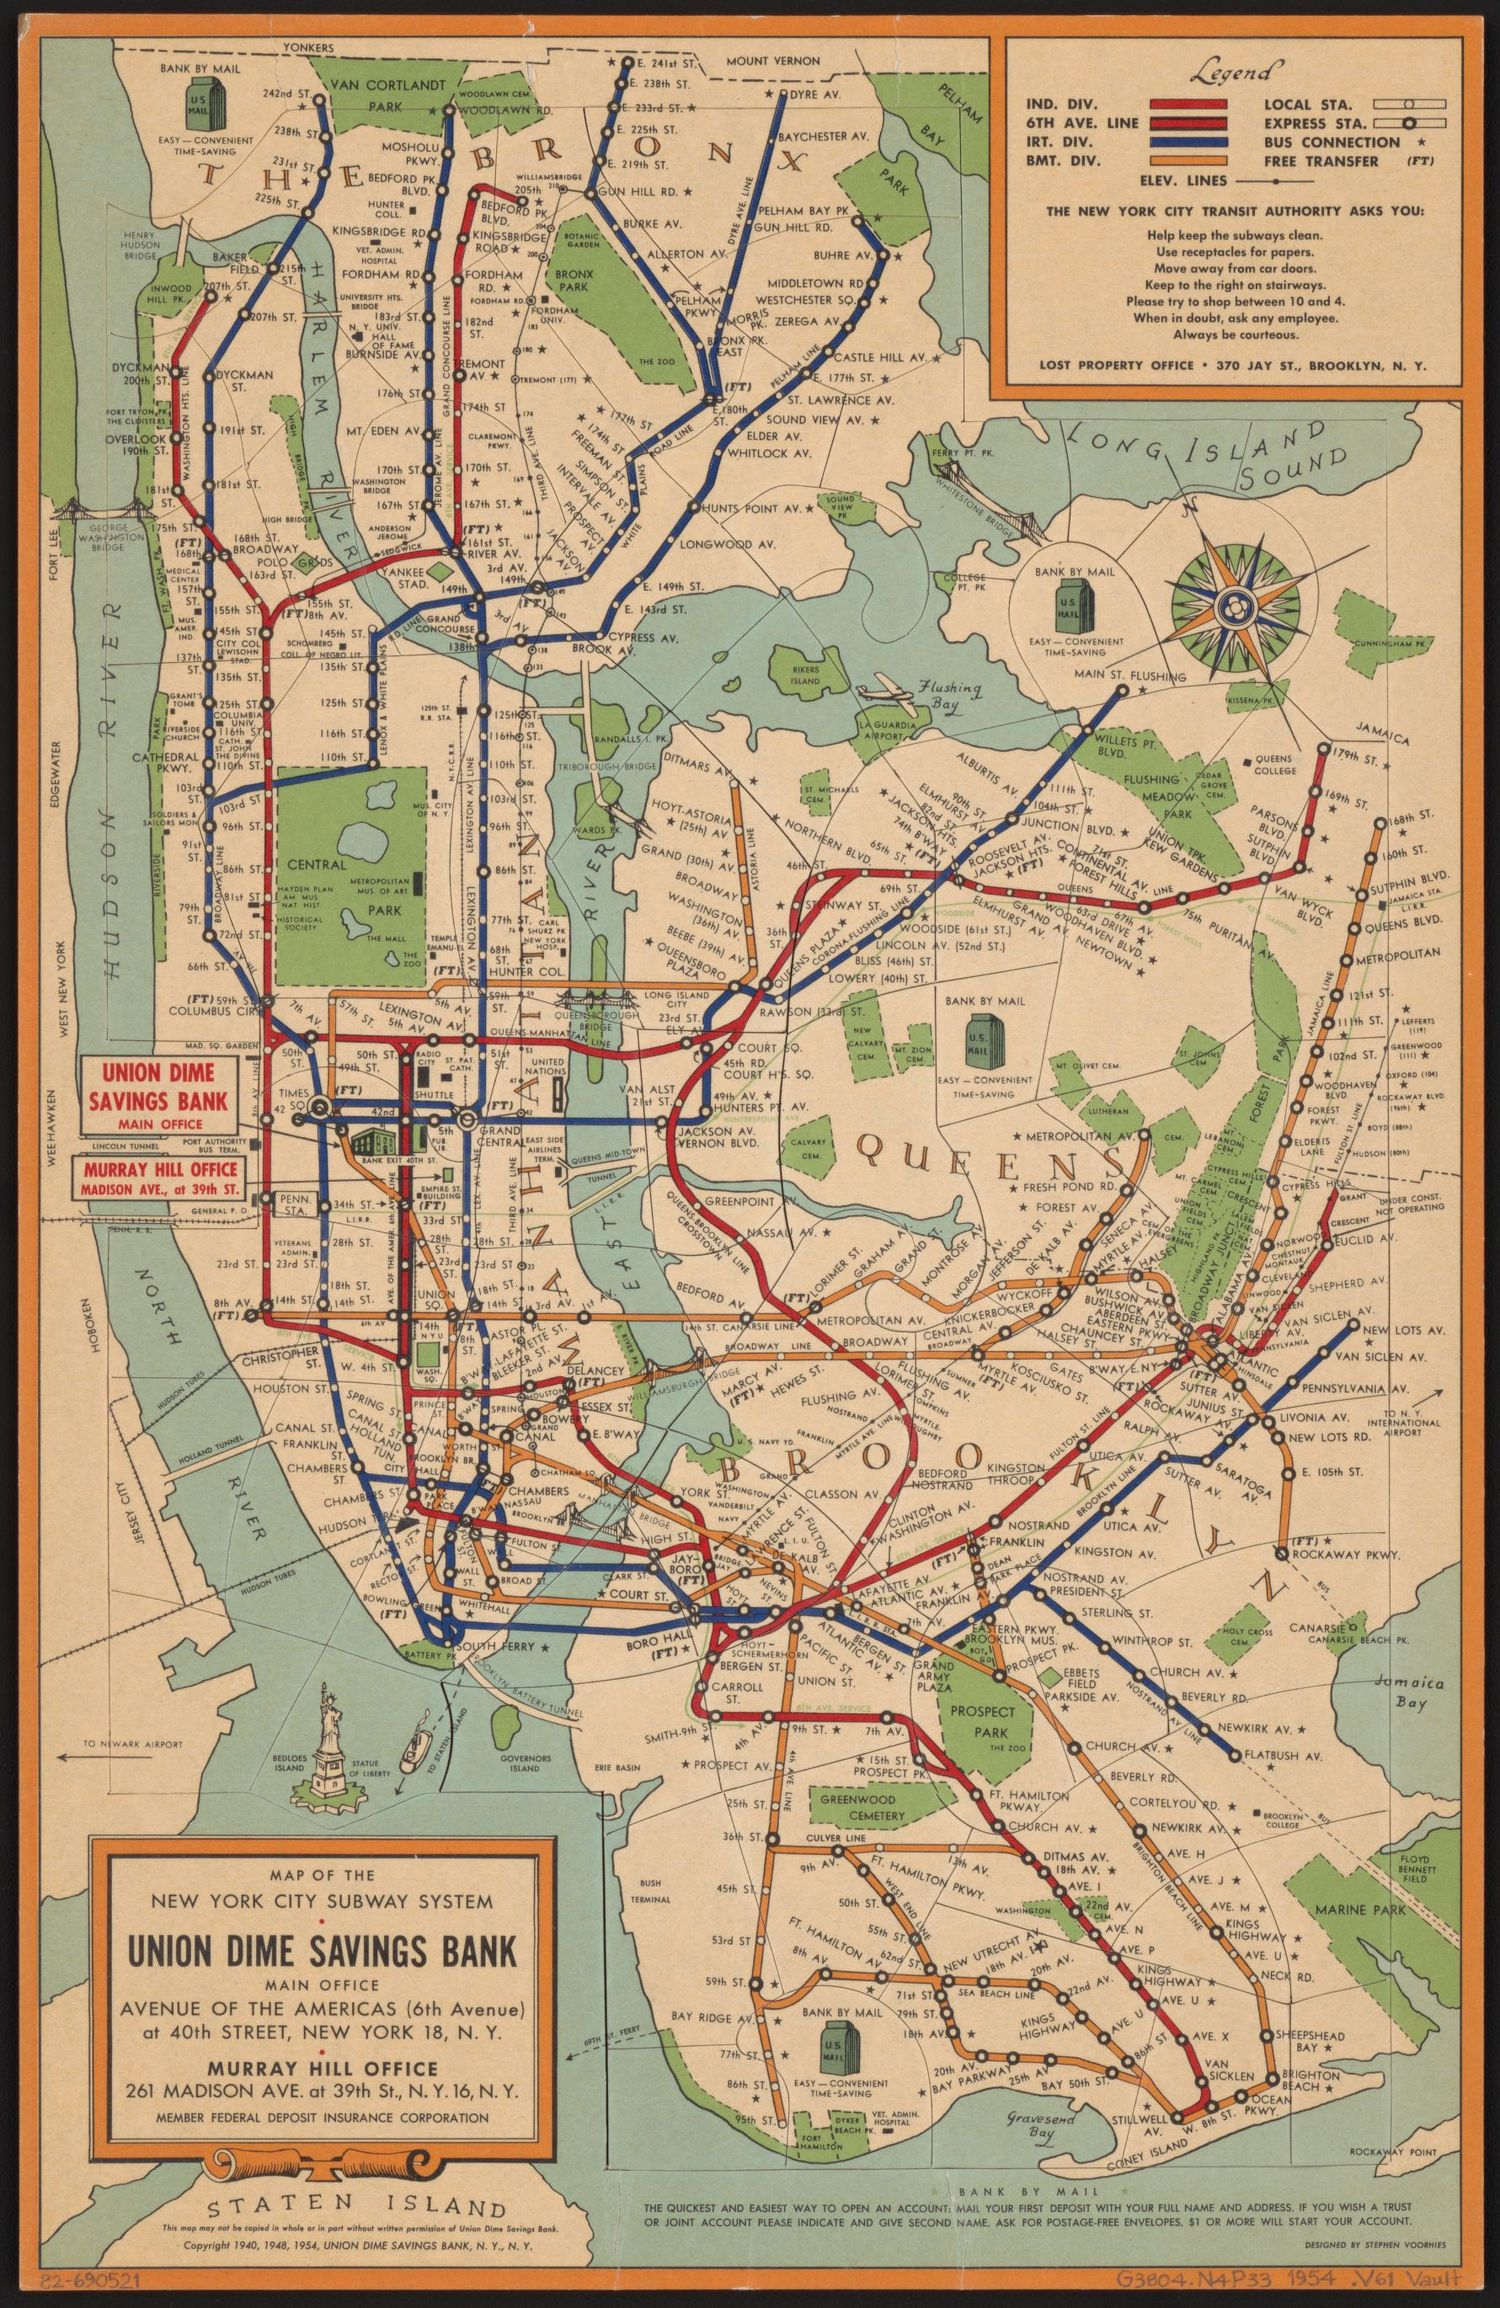 Queens And Manhatan Subway Map.Maps Vintage Map Shows New York City Subway System In 1954